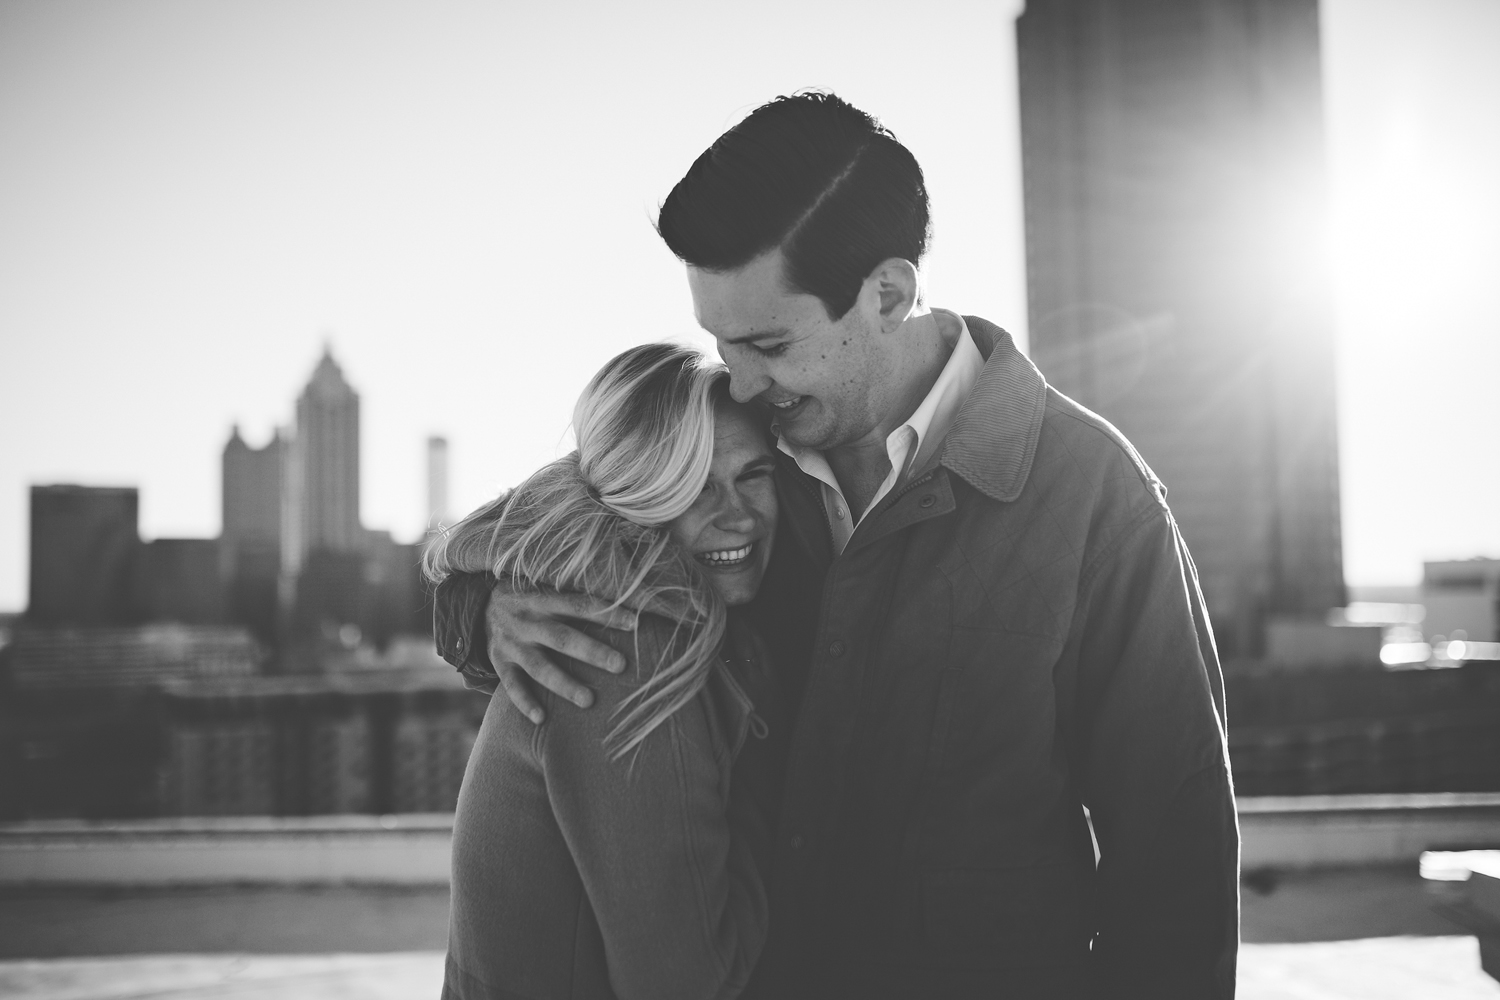 KDP_claire&drew - the proposal-236.jpg